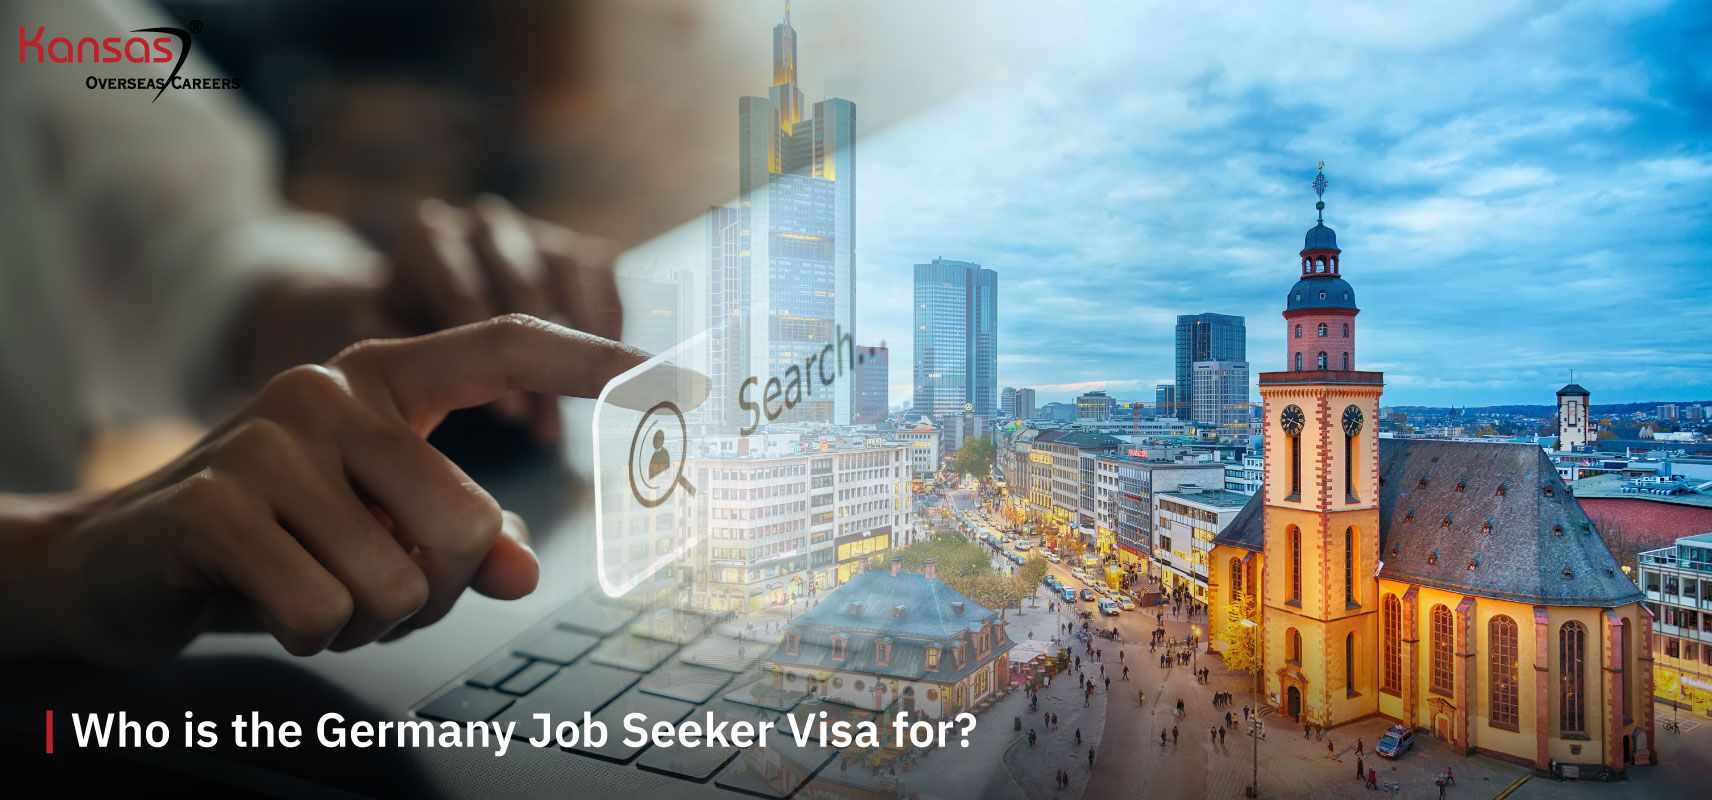 Who-is-the-Germany-Job-Seeker-Visa-for